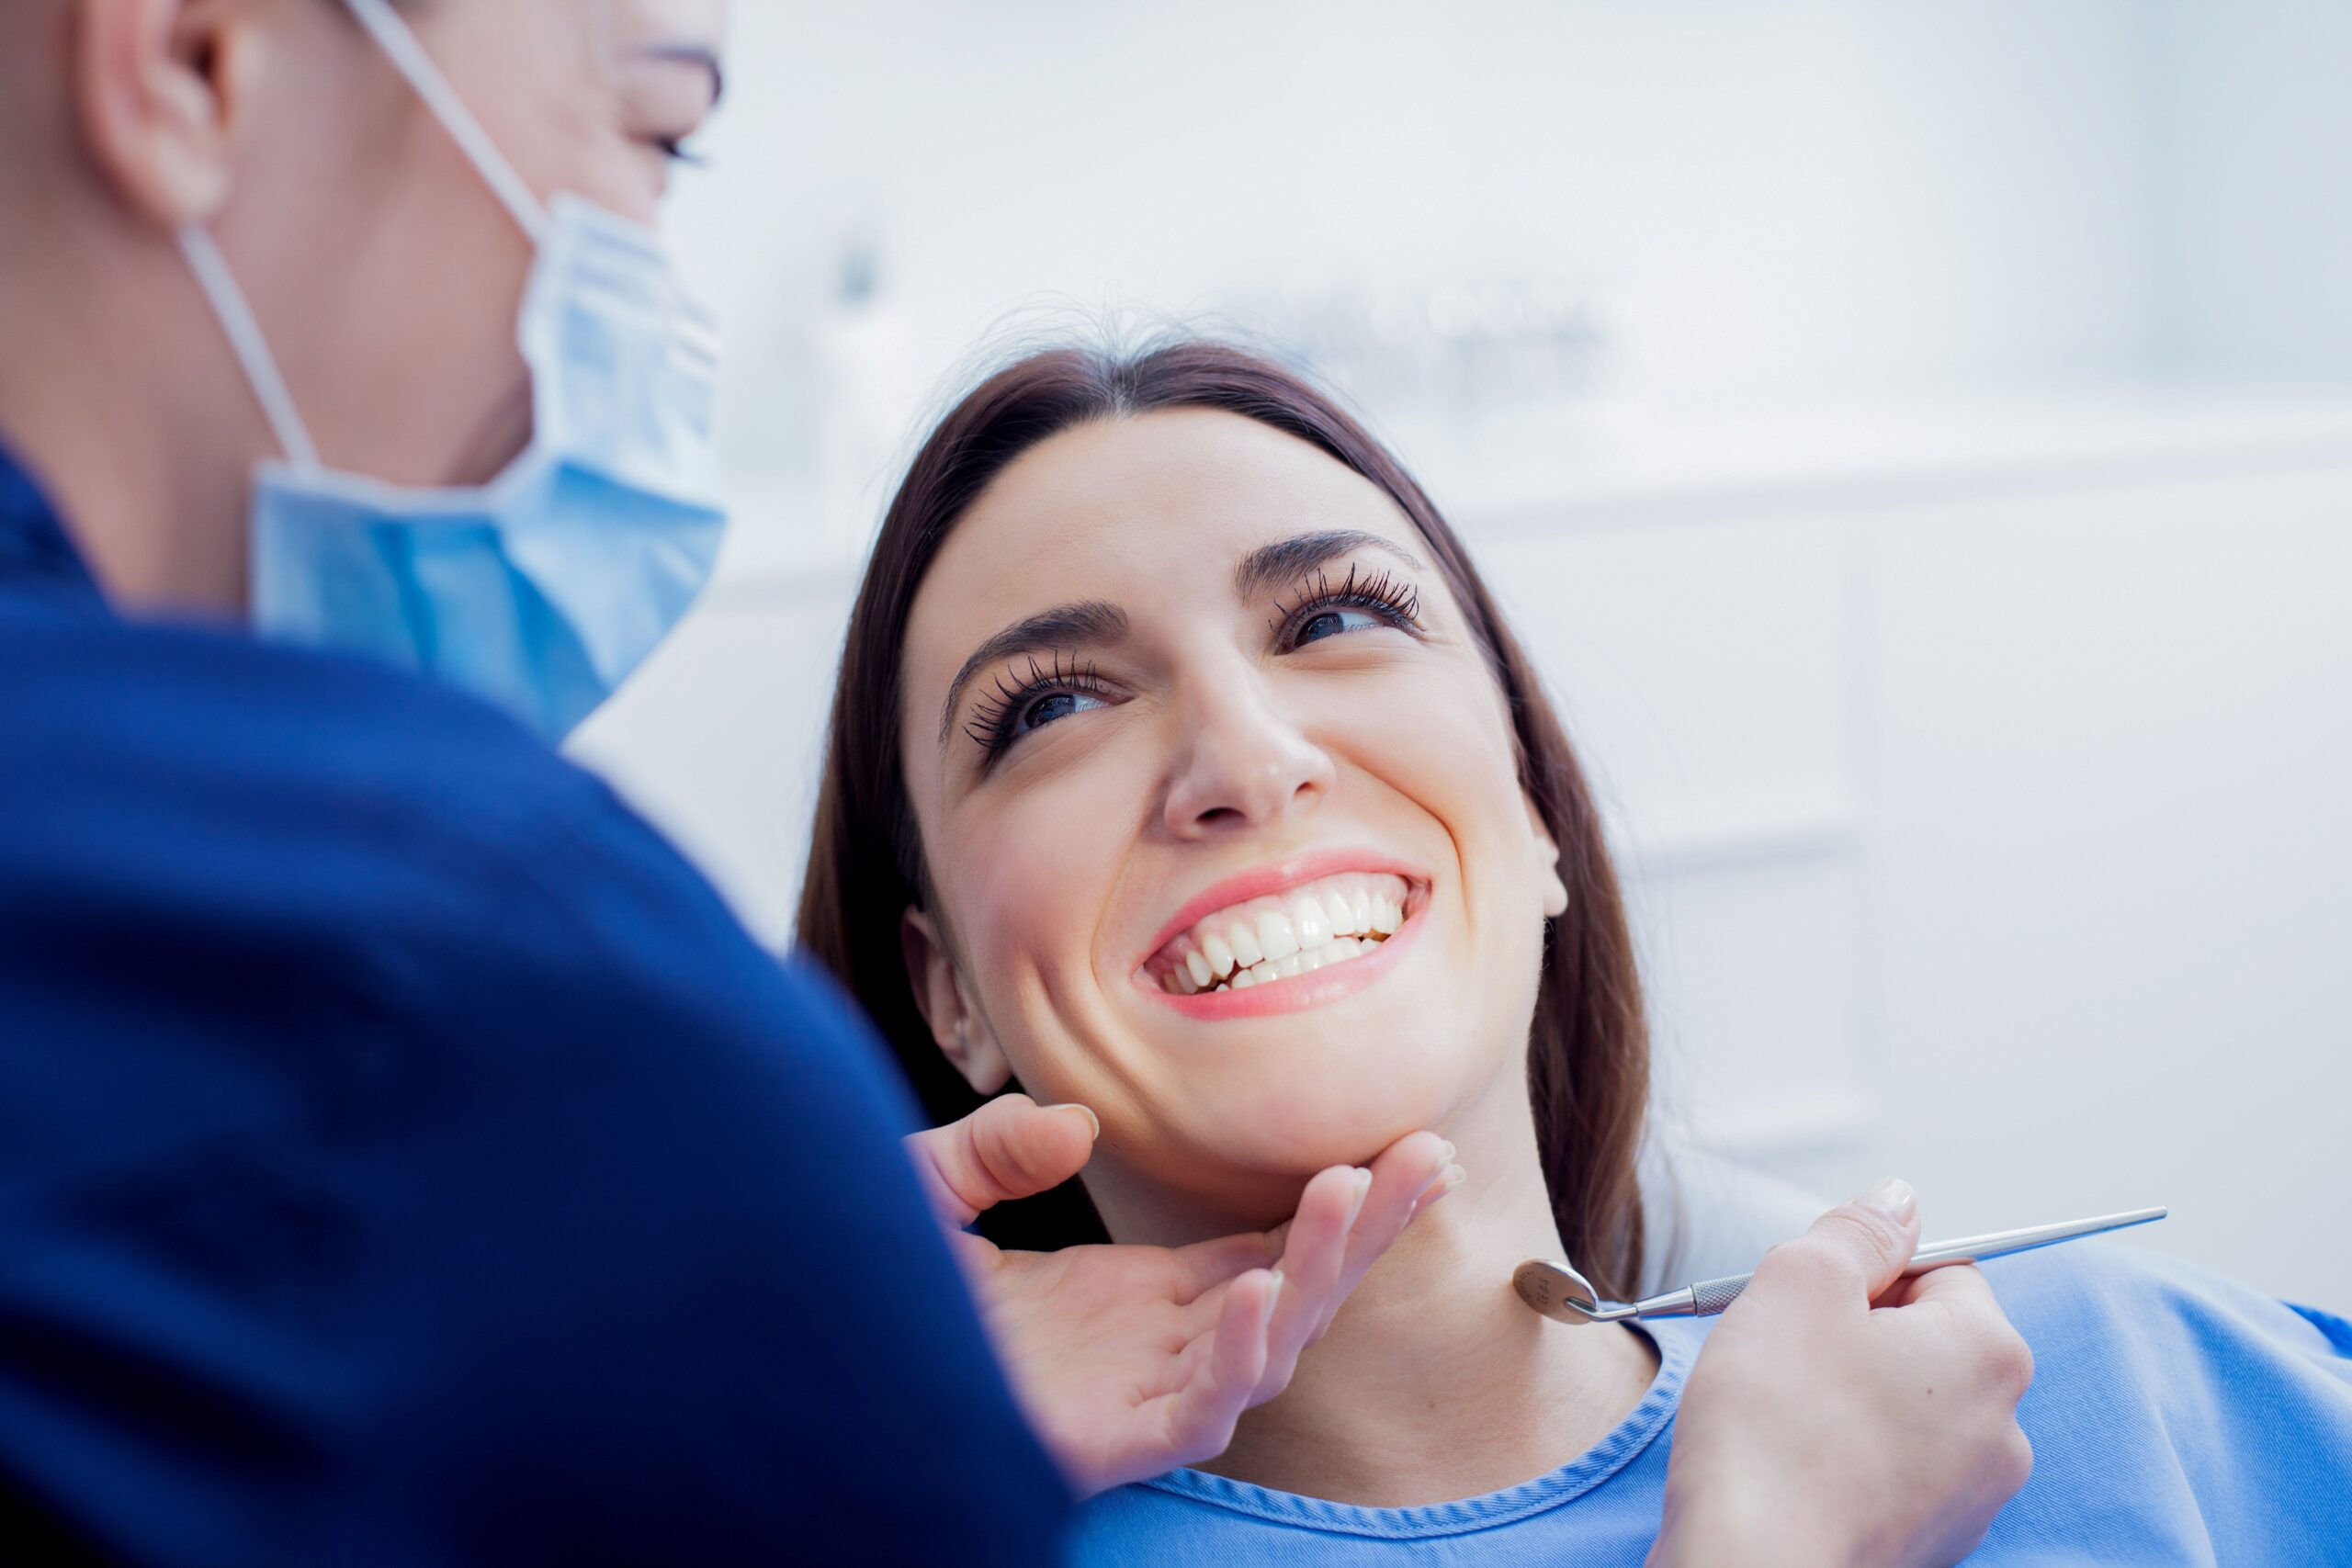 Dentist in Sioux City | Do I Really Need an Exam?